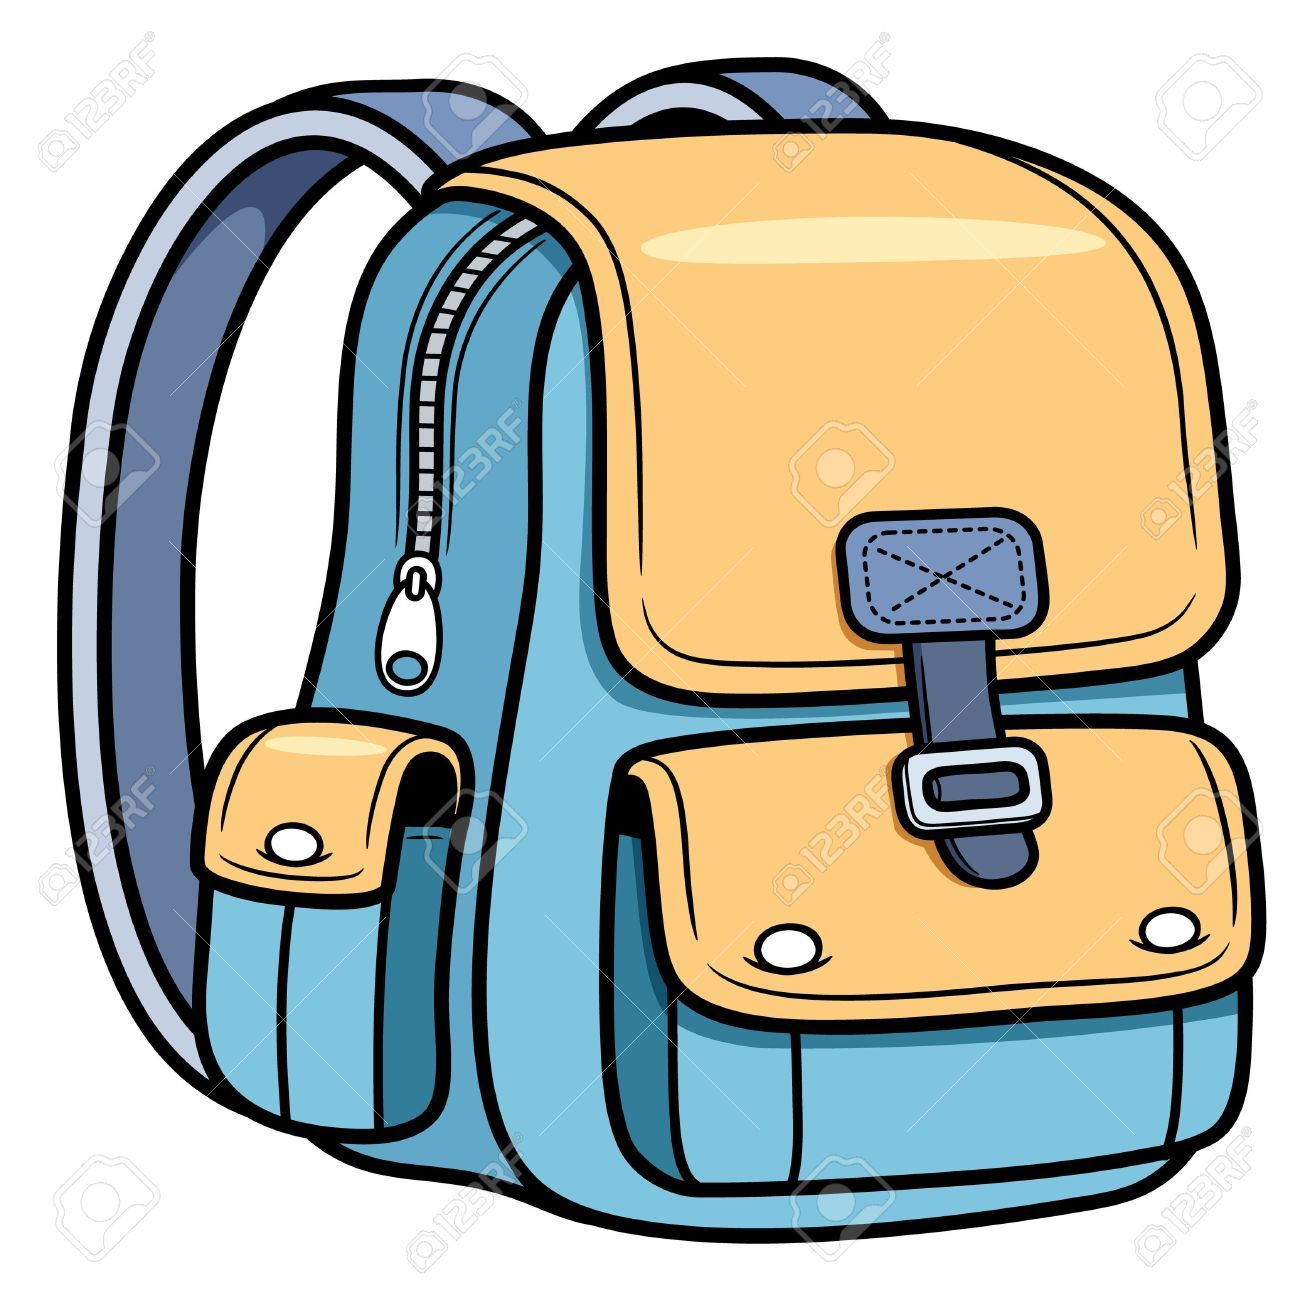 Animated school bag clipart clip royalty free stock Bookbag clipart animated, Bookbag animated Transparent FREE for ... clip royalty free stock